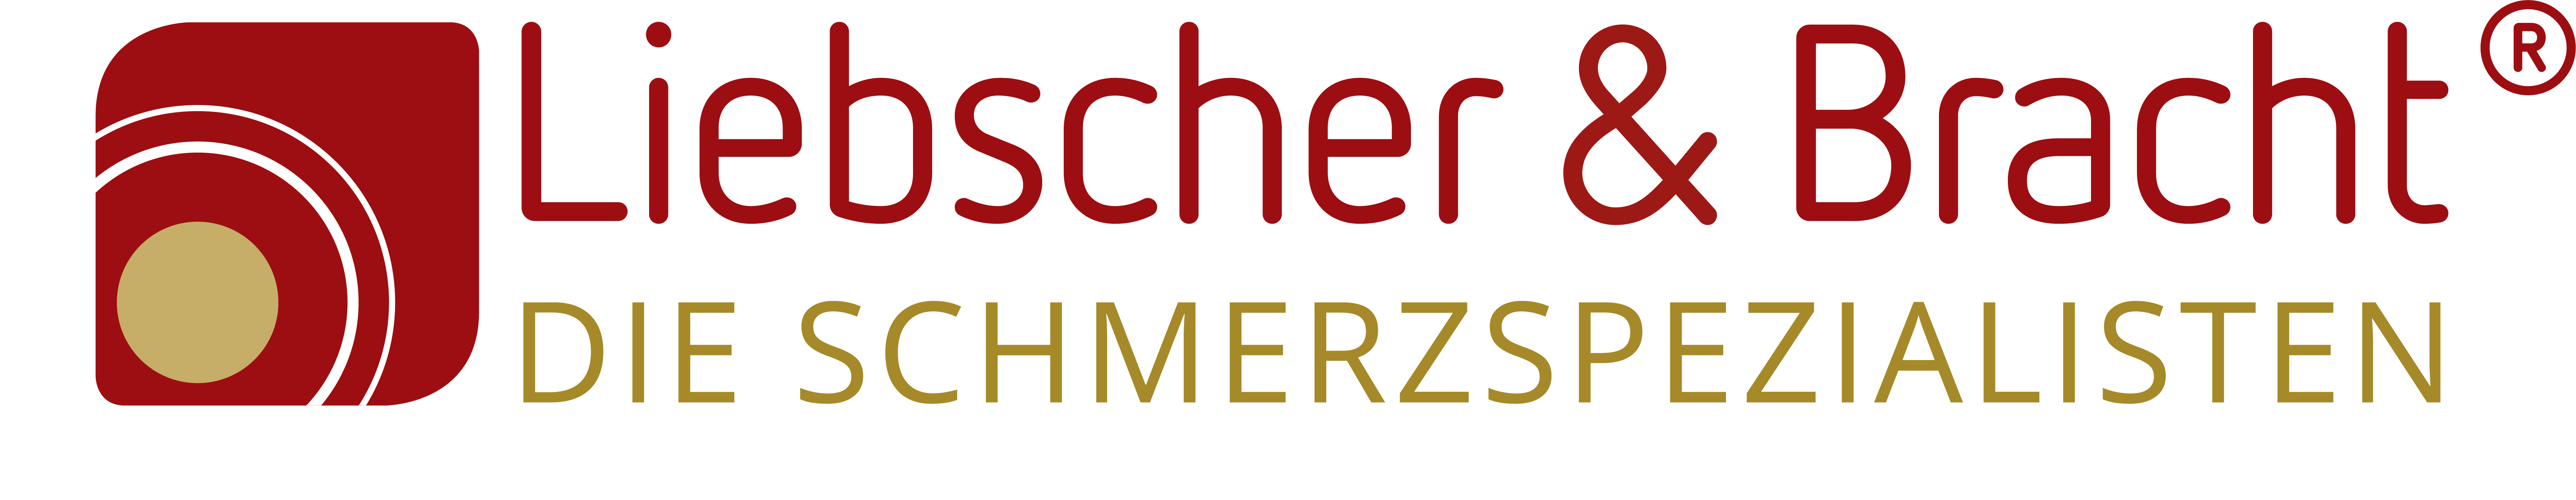 https://partner.liebscher-bracht.com/wp-content/uploads/2018/02/lb-logo-2016-dunkel-registred.jpg